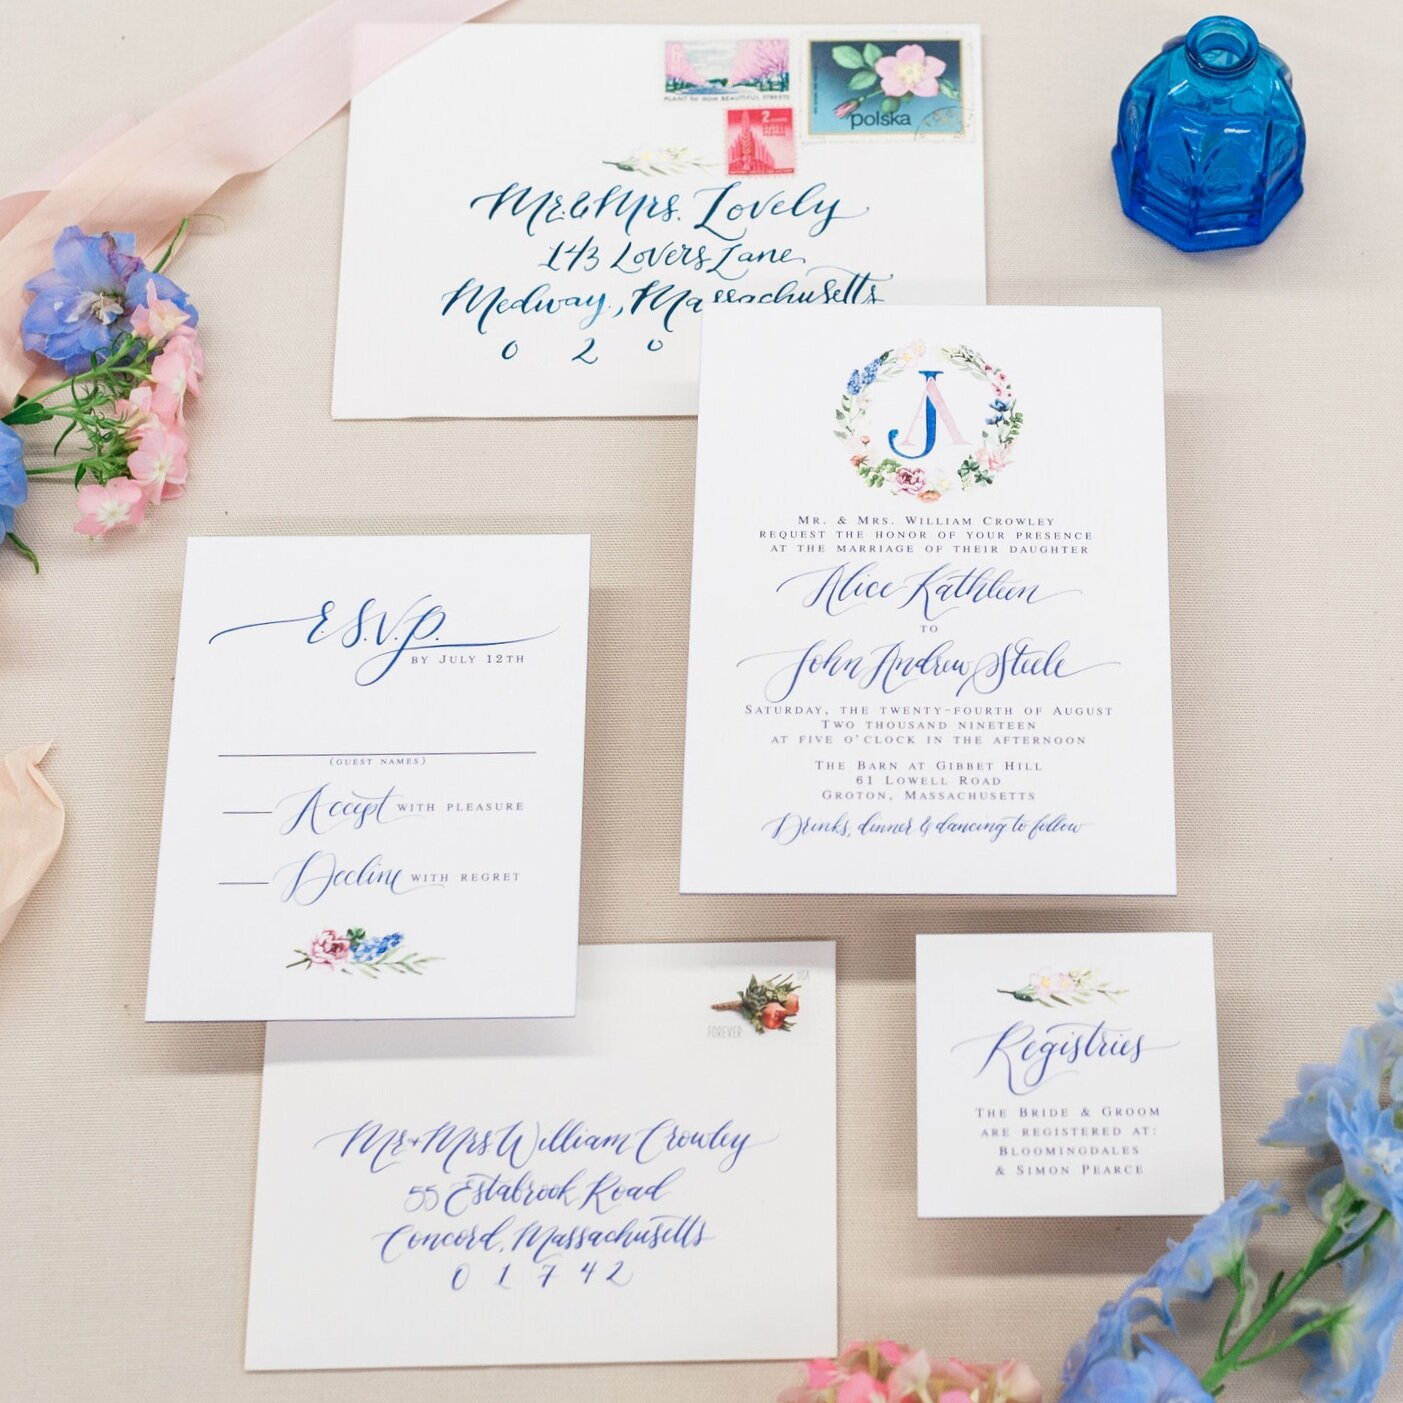 BLUE AND PINK FLORAL WREATH WATERCOLOR WEDDING INVITATIONS